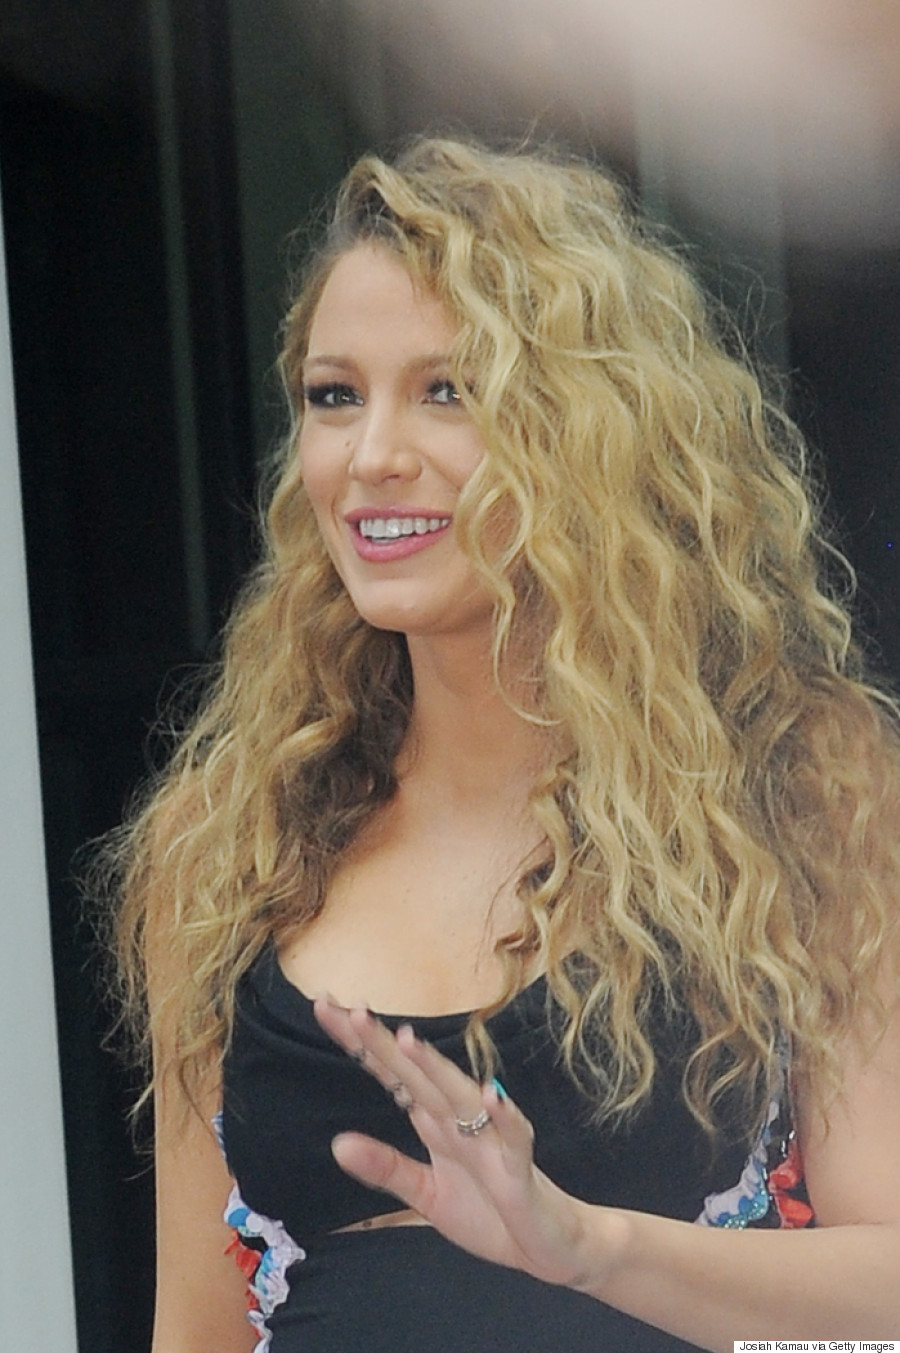 Blake Livelys Big Curls Are What 80s Hair Dreams Are Made Of